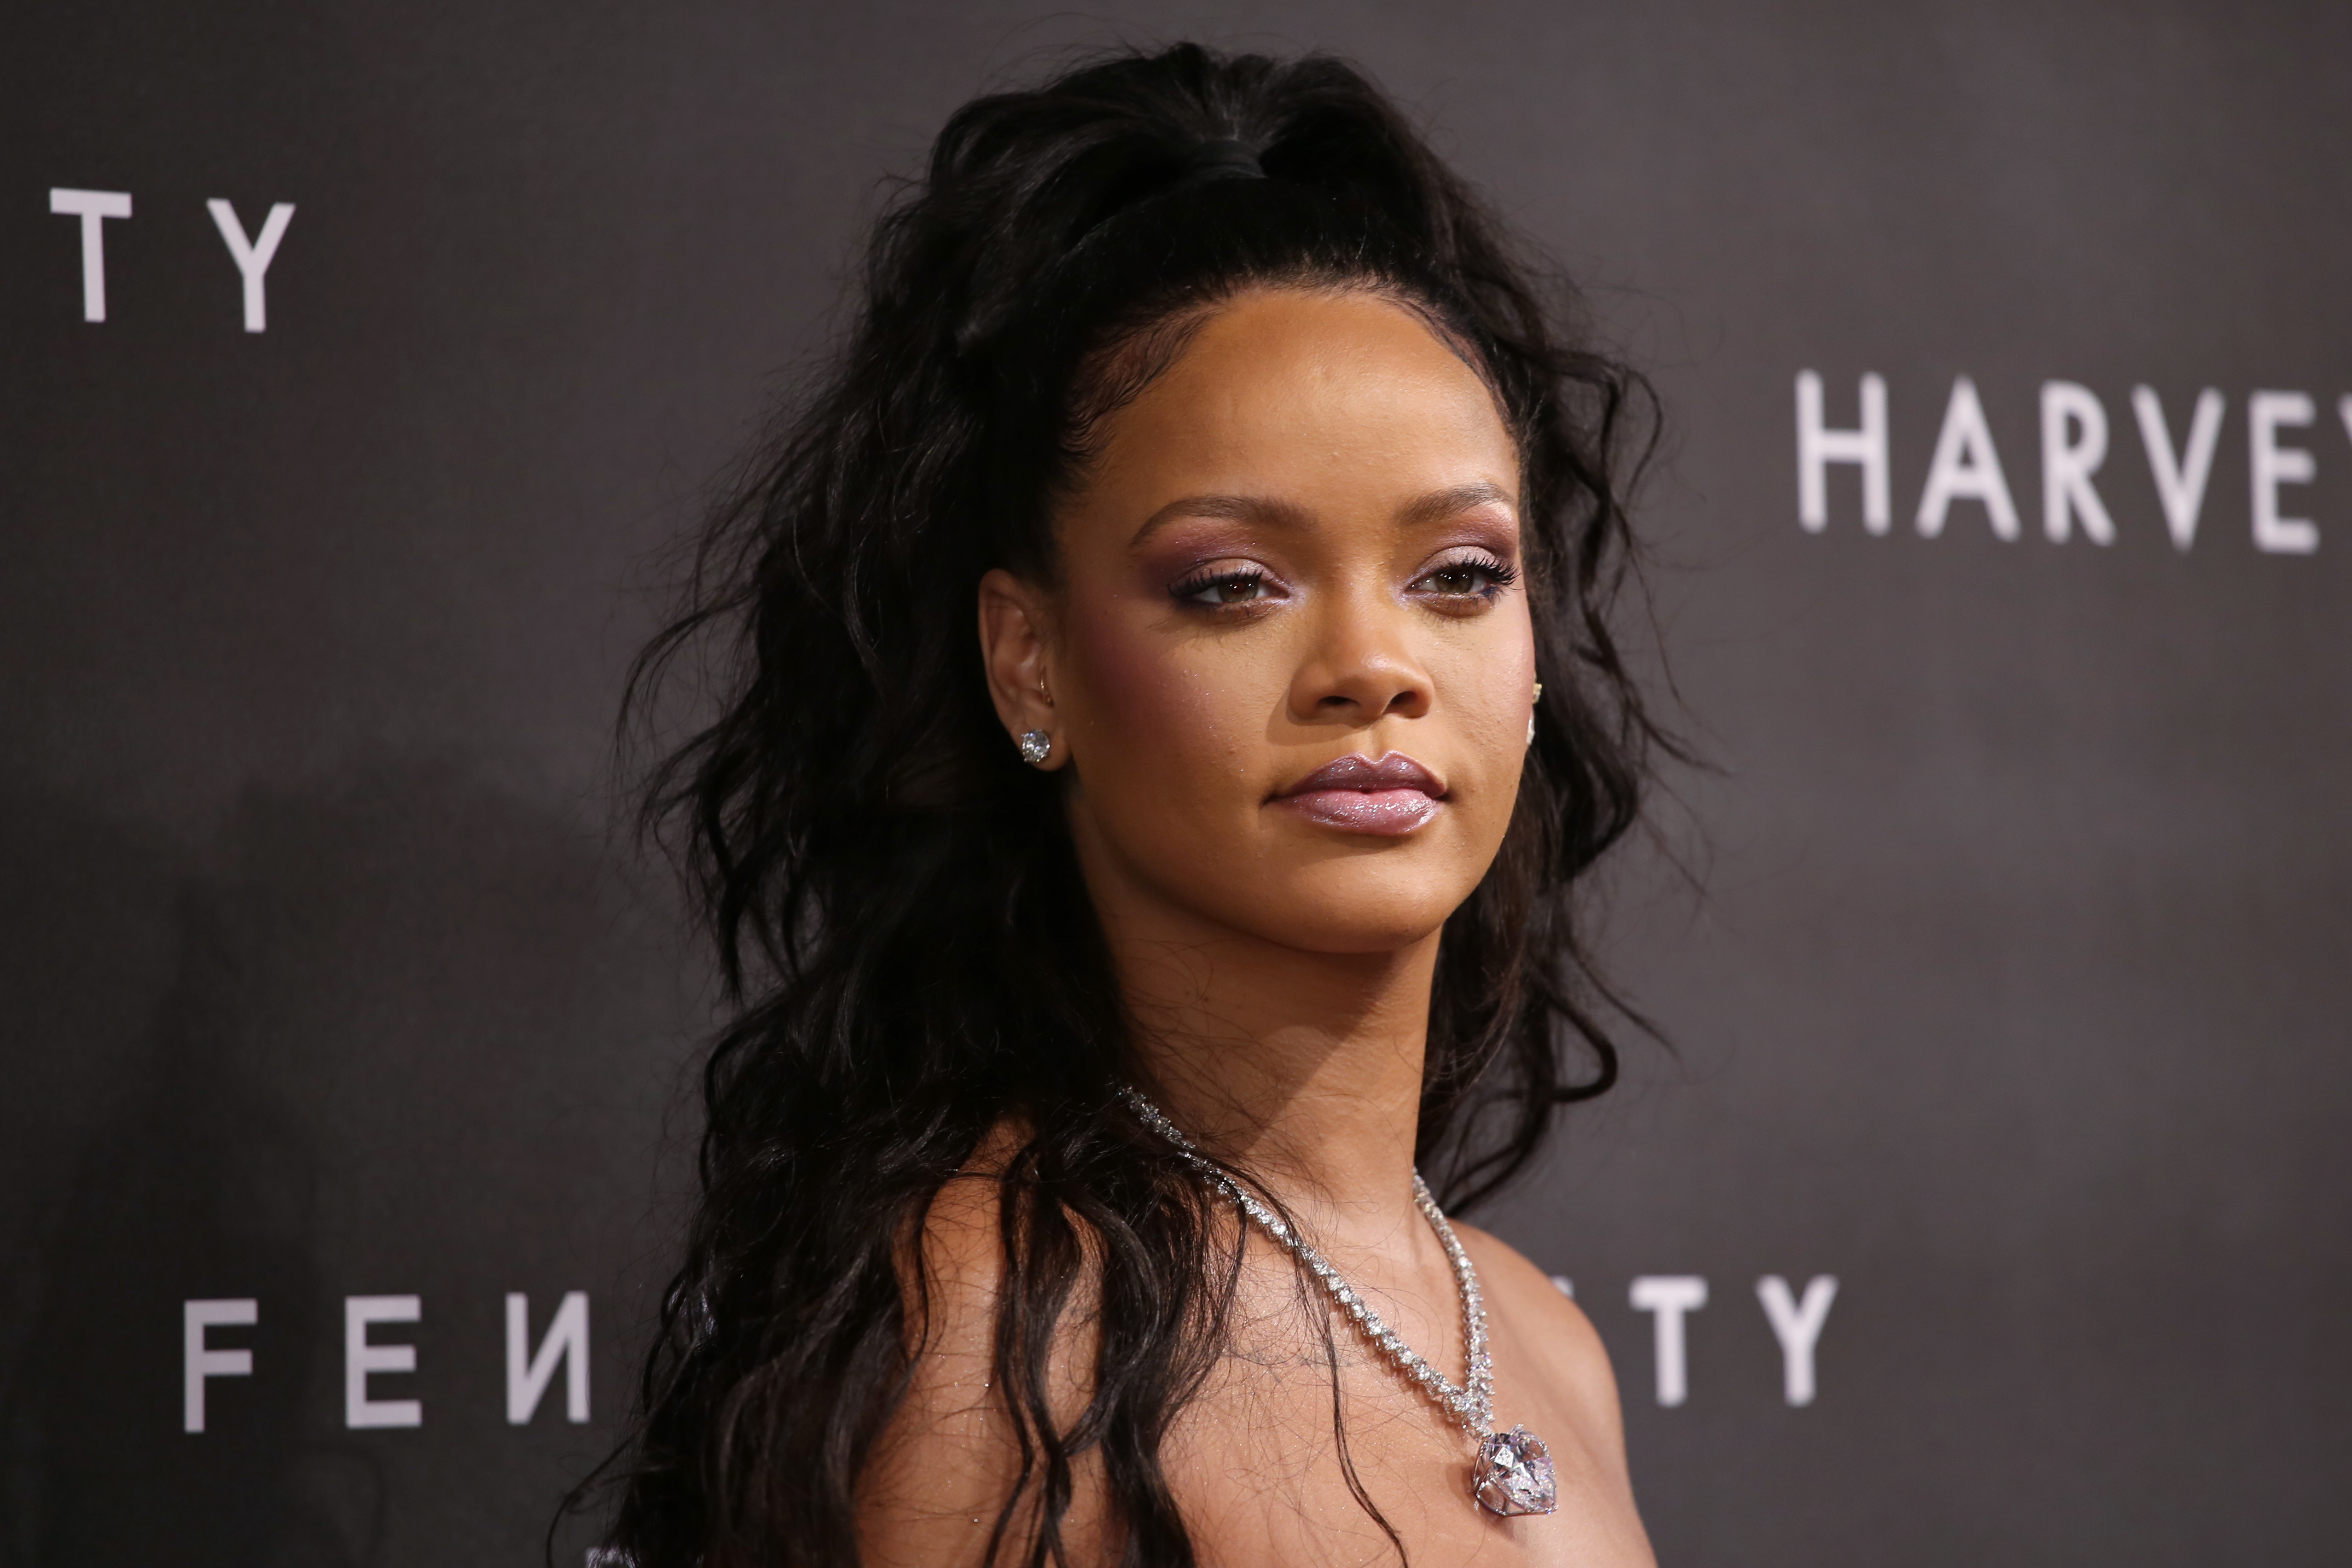 Fenty Beauty by Rihanna Launch held at Harvey Nichols - Arrivals  Featuring: Rihanna Where: London, United Kingdom When: 19 Sep 2017 Credit: Lia Toby/WENN.com